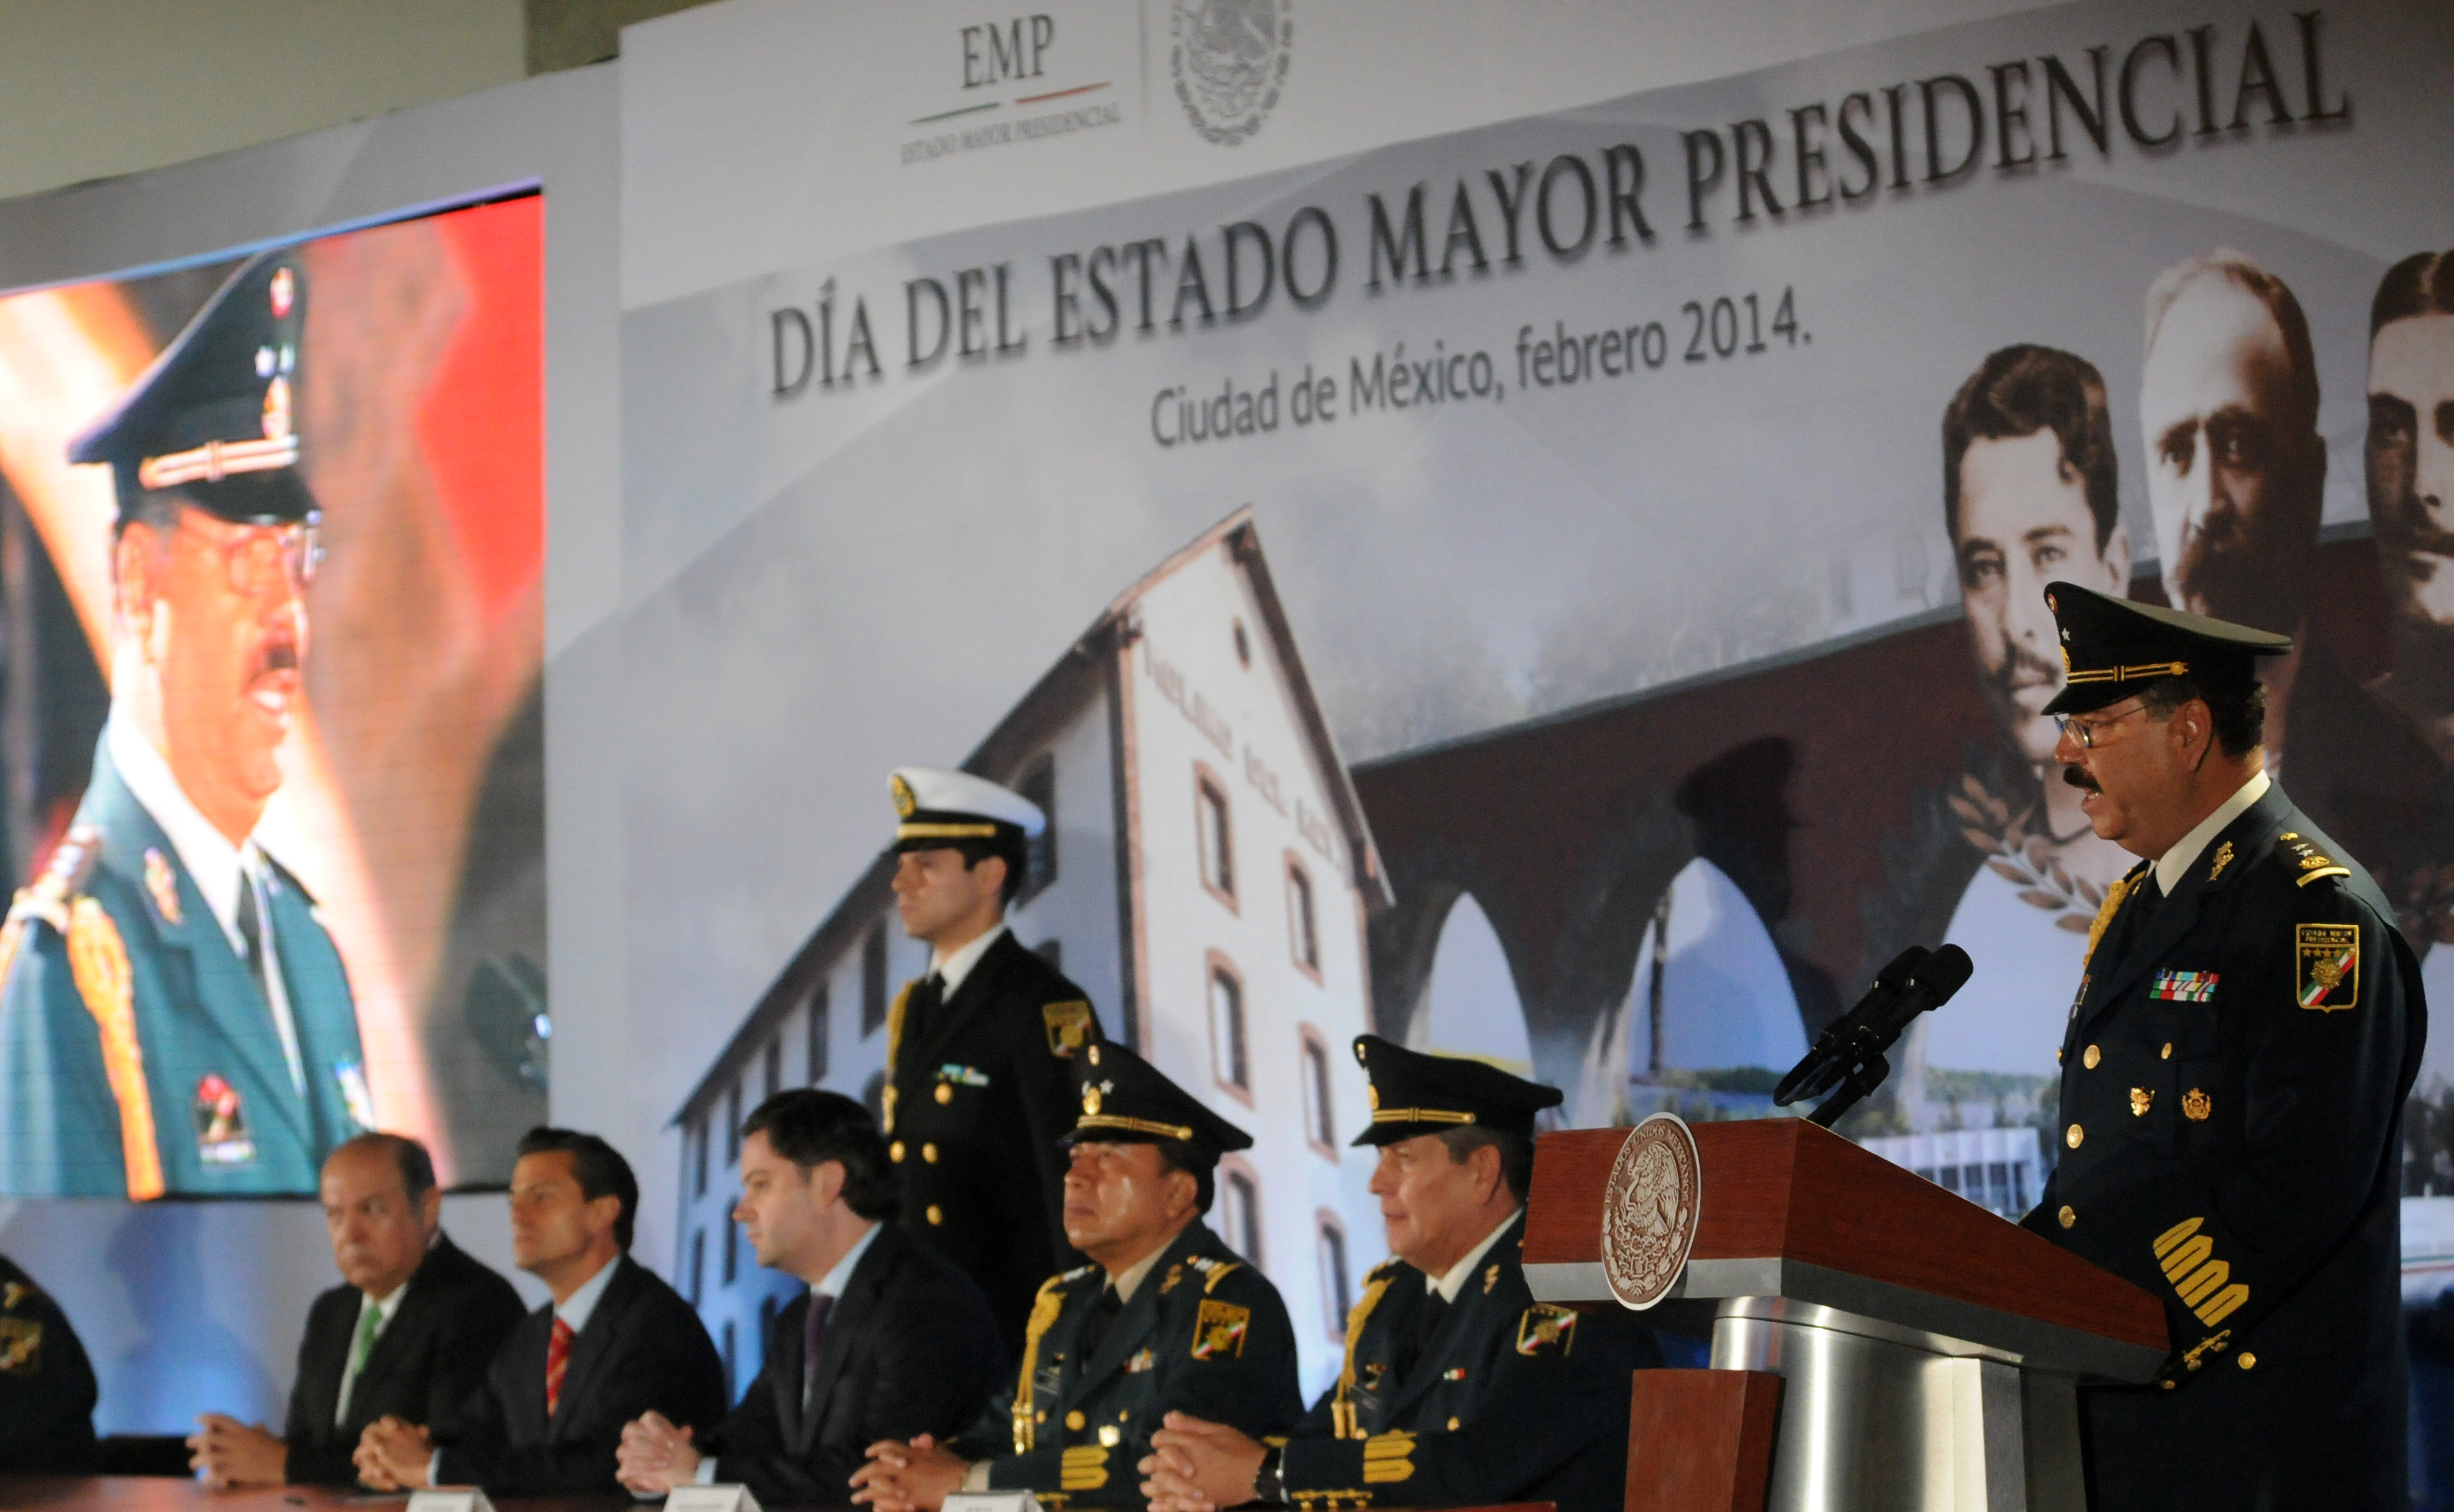 Da del estado mayor presidencial 12824381023 o